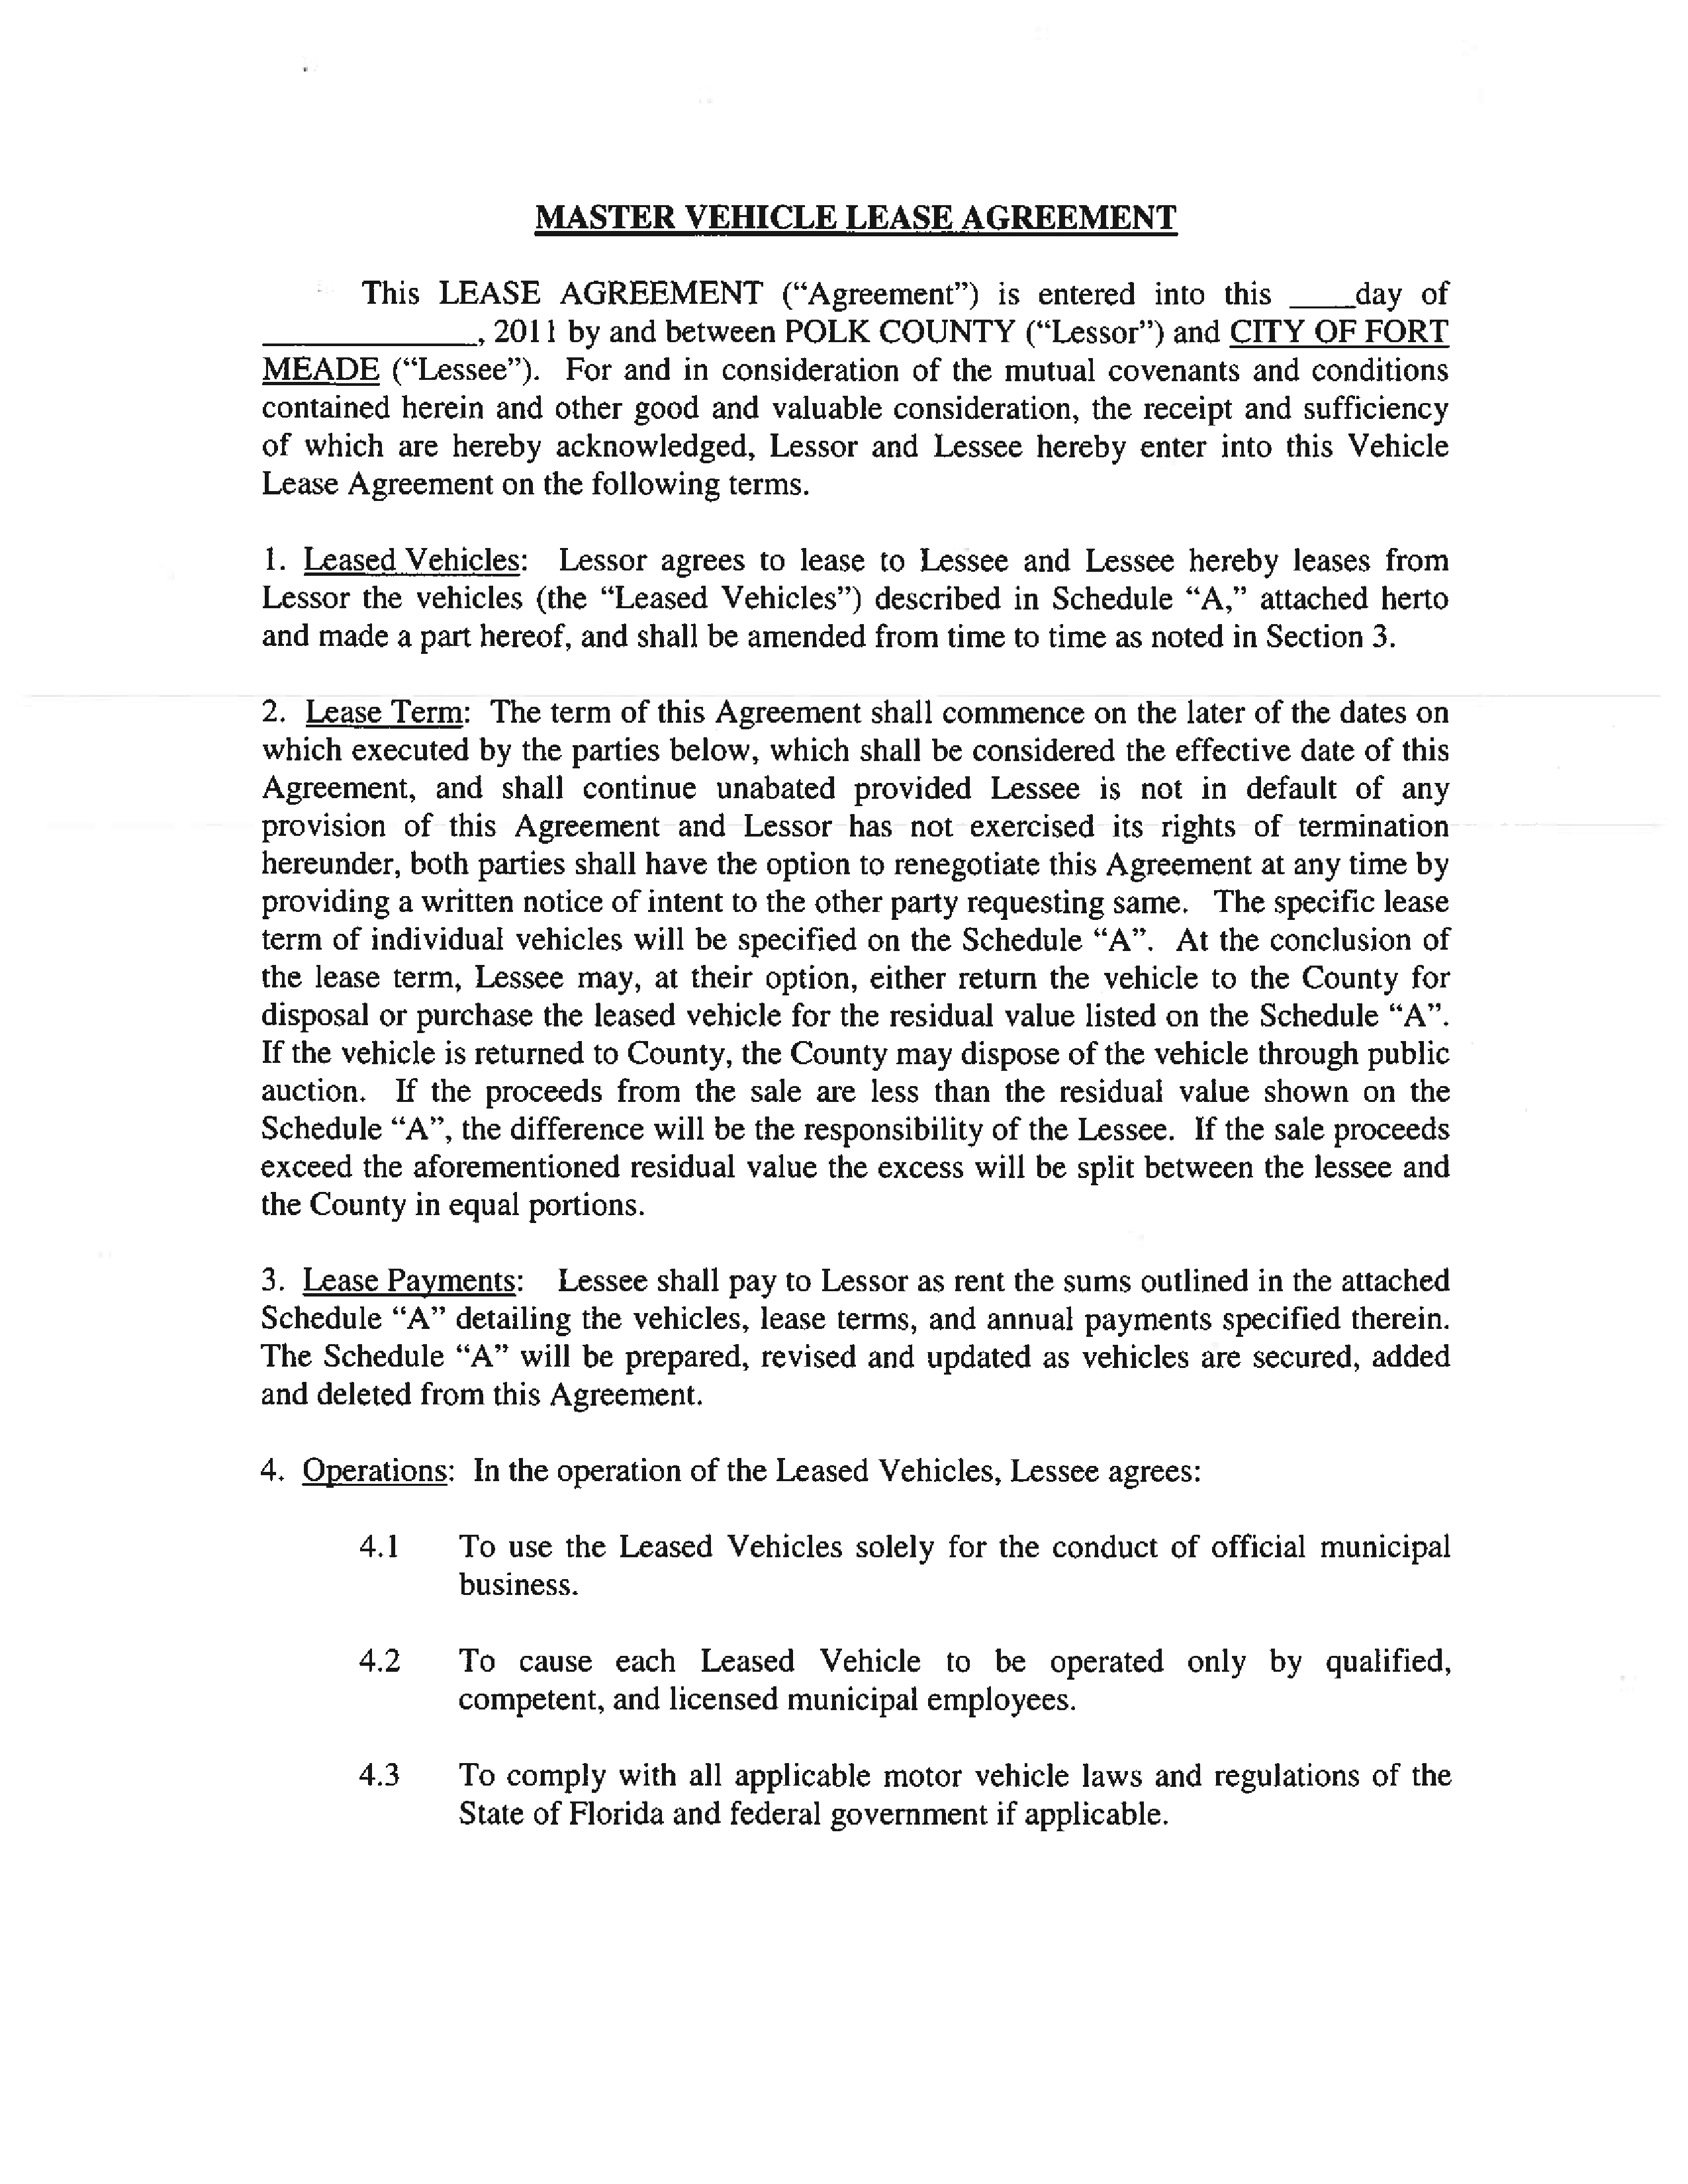 Free Master Vehicle Lease Agreement | Templates At - Free Printable Vehicle Lease Agreement